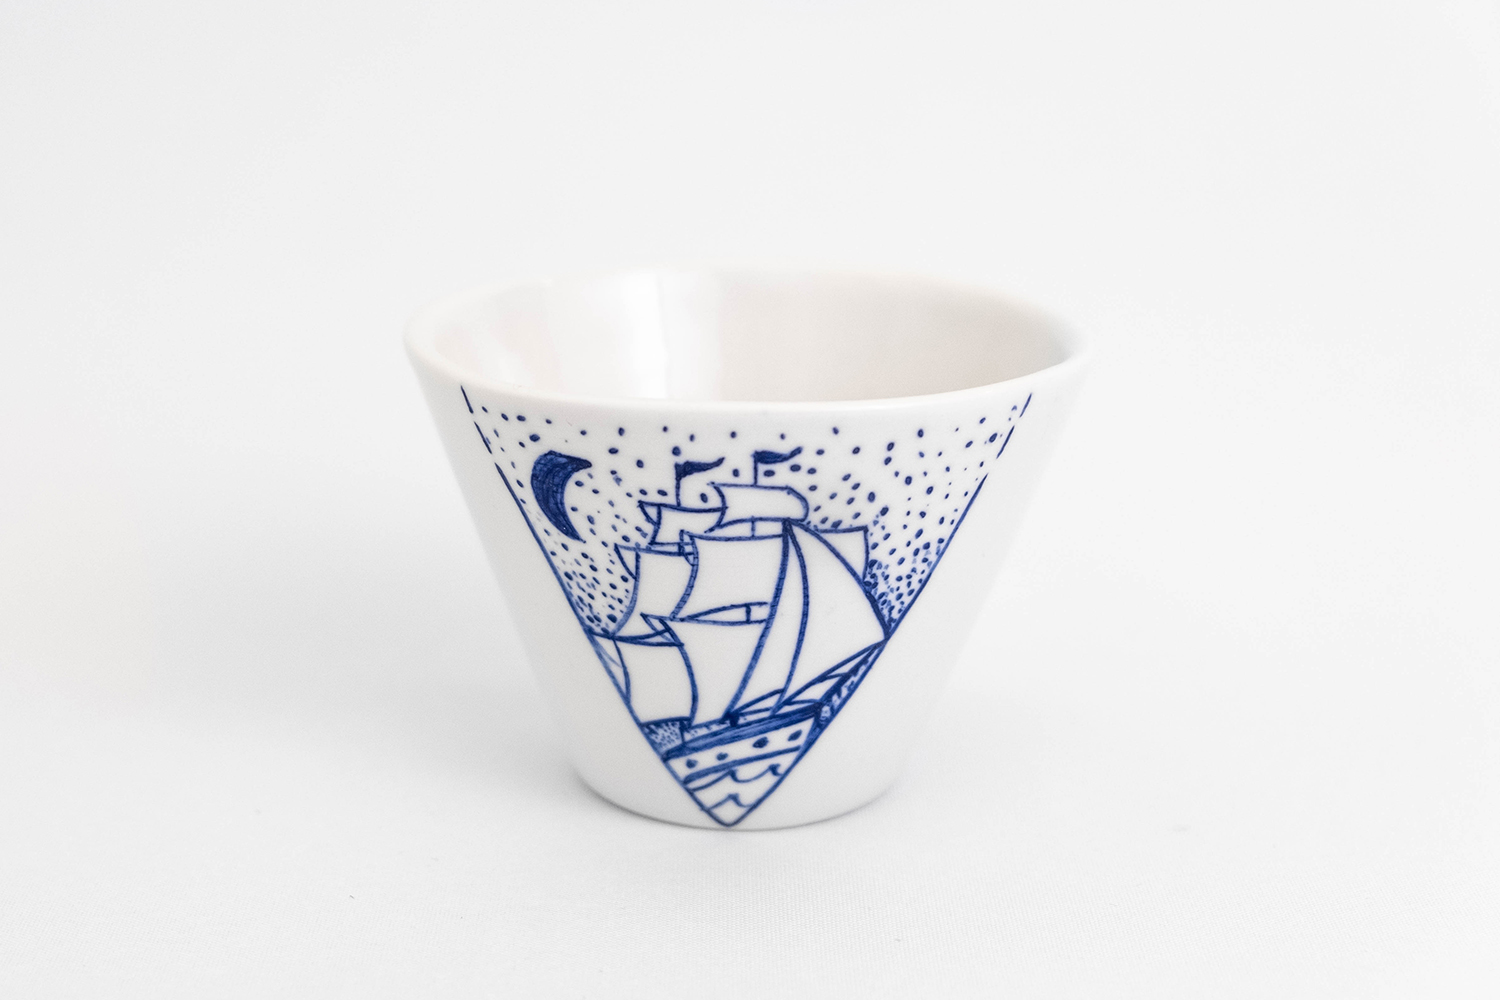 espresso coffee cup japanese tea pot blue white porcelain small bowl handmade hand painted Berlin art style Antikapratika.jpg